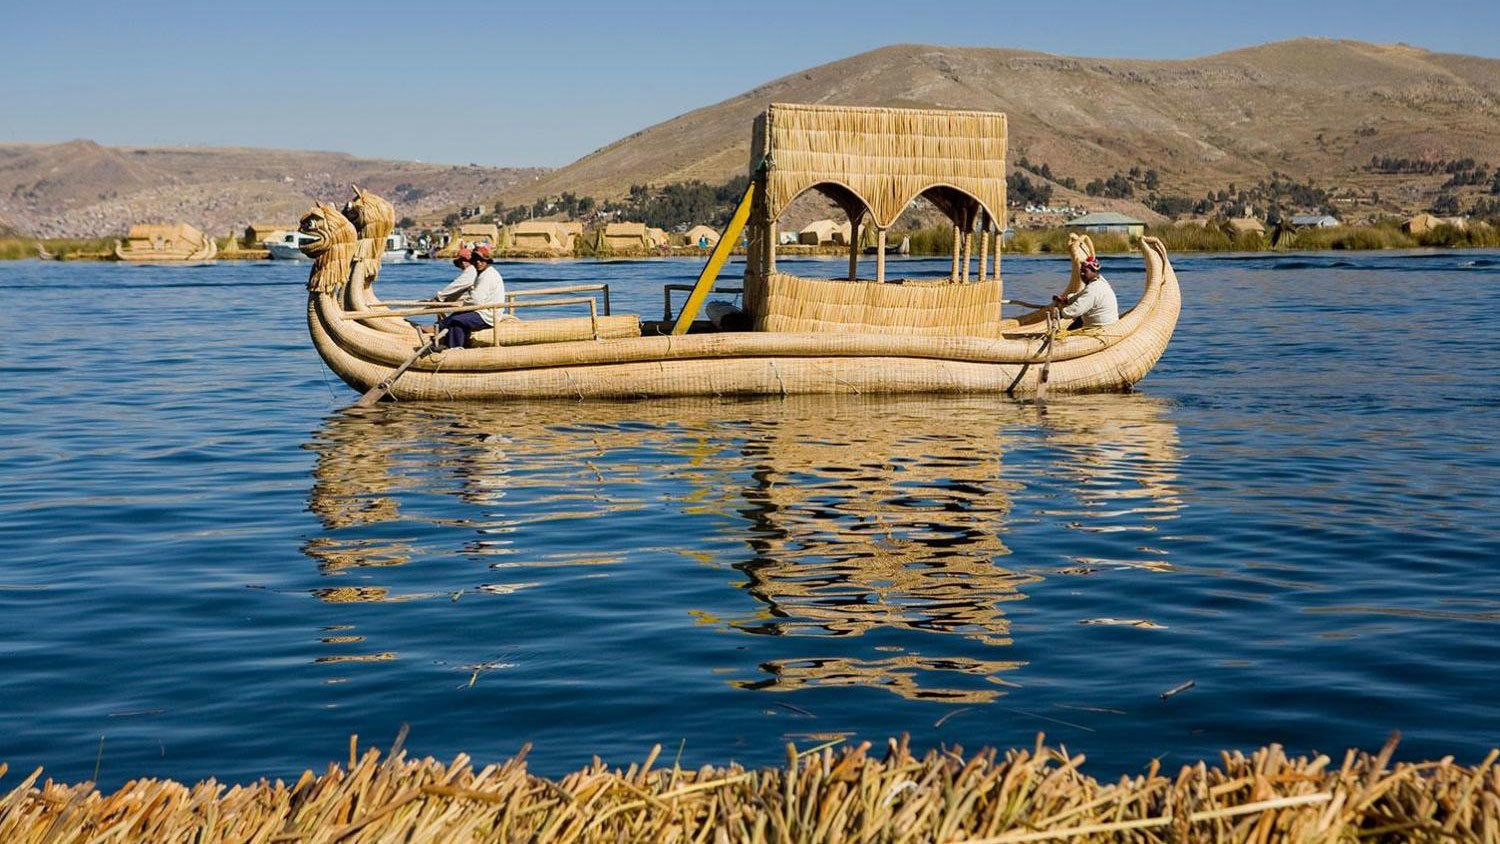 Small wooden boat in Lake Titicaca